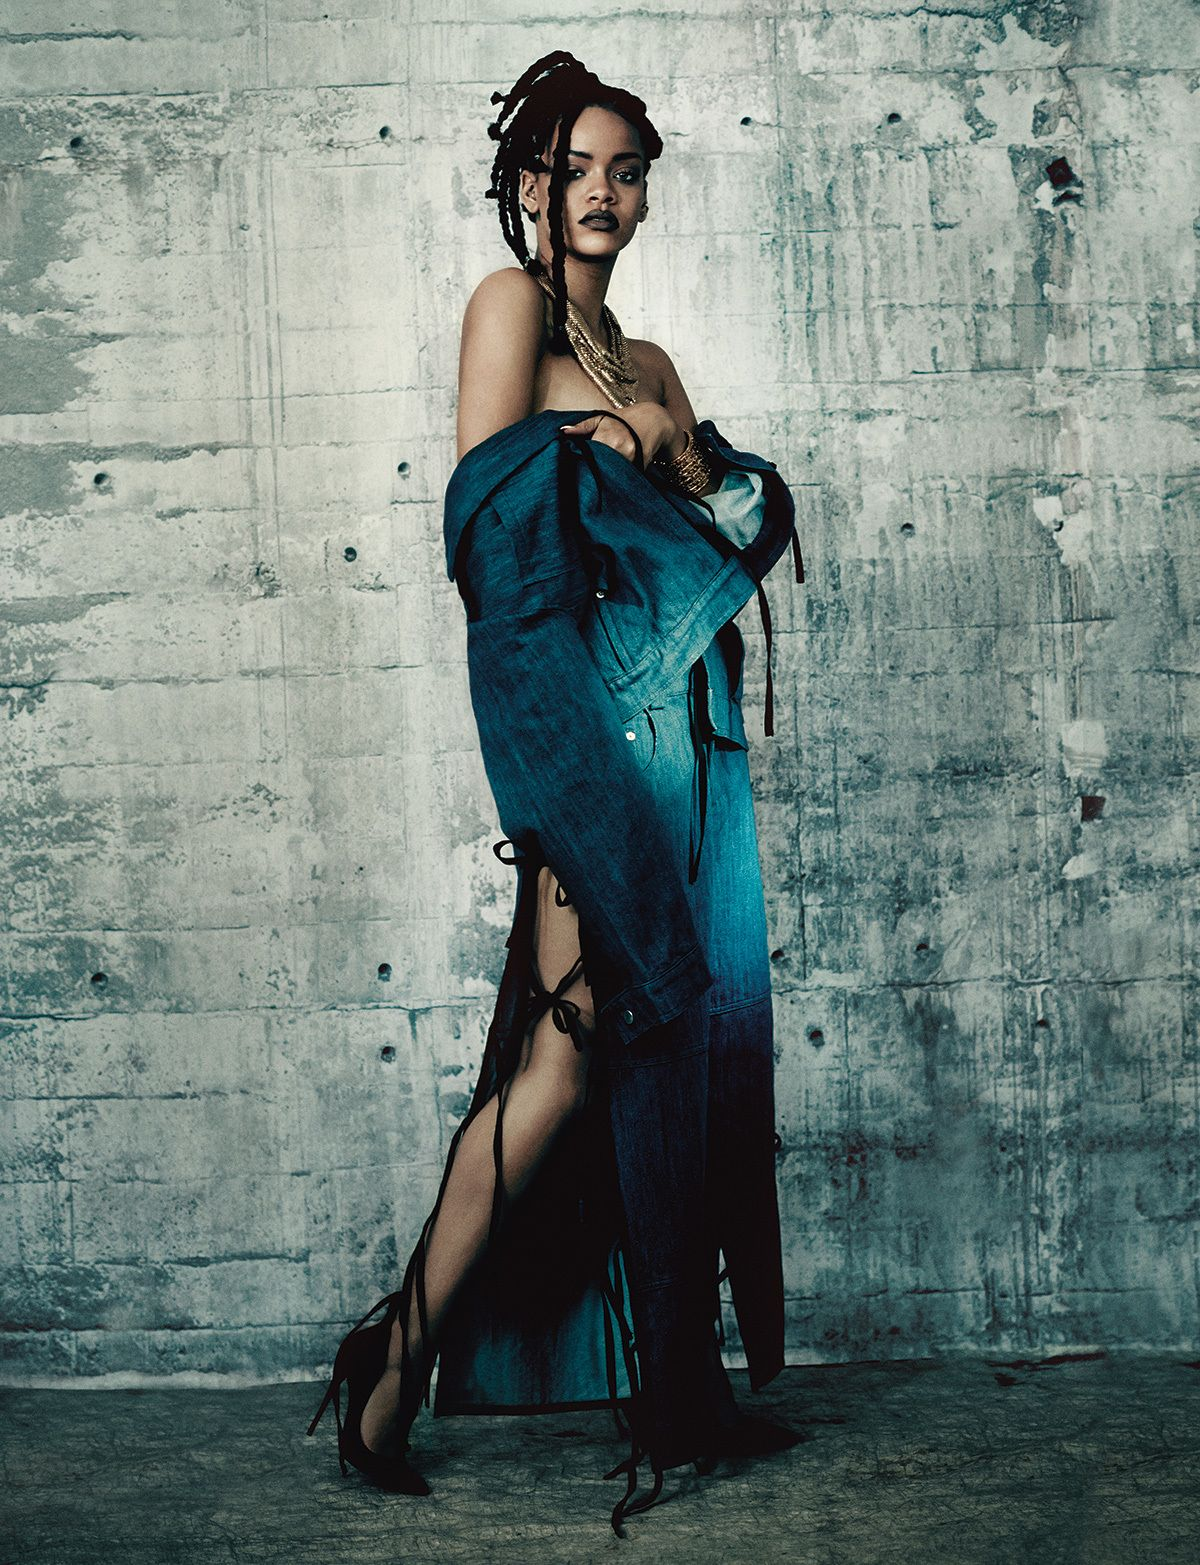 Rihanna's Full Editorial From The Pre-Spring 2015 Music